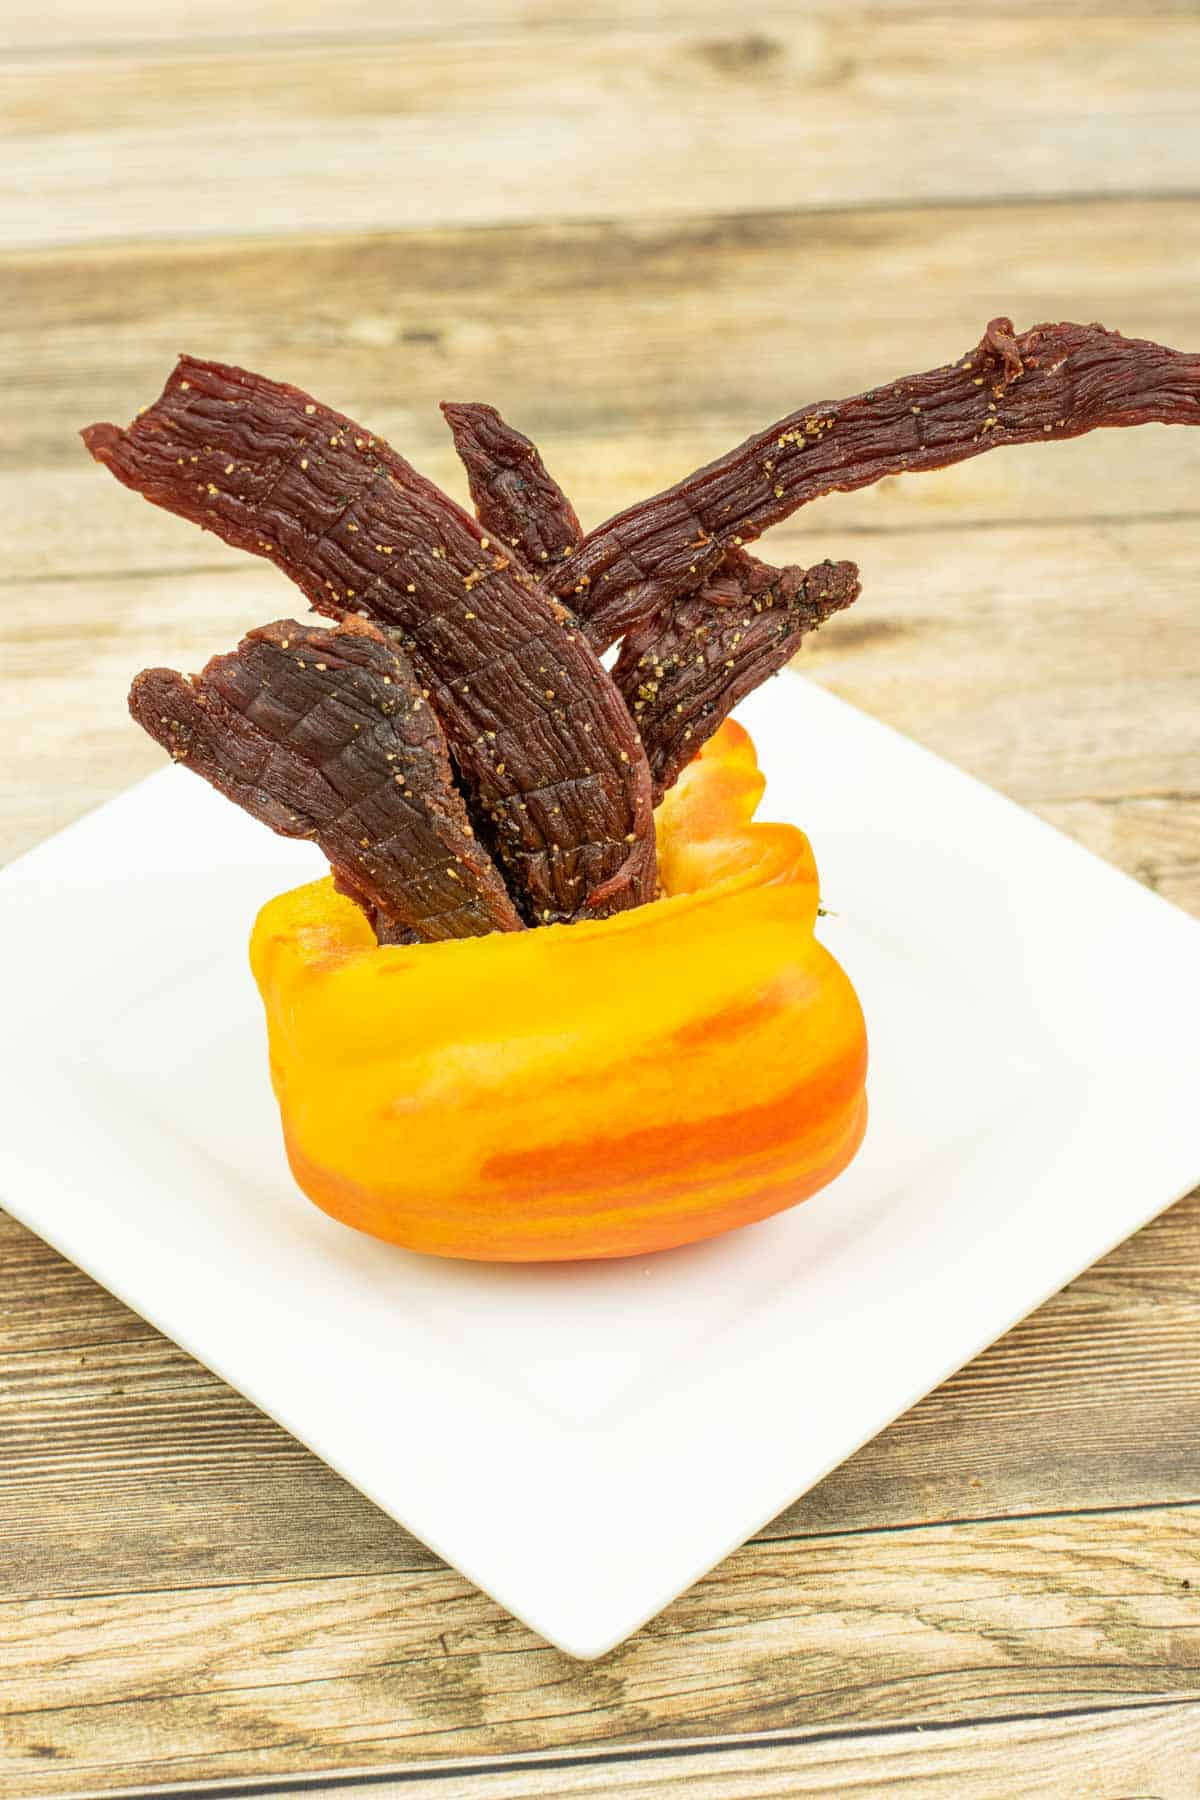 Tangy beef jerky coming out of an orange bell pepper on a white plate